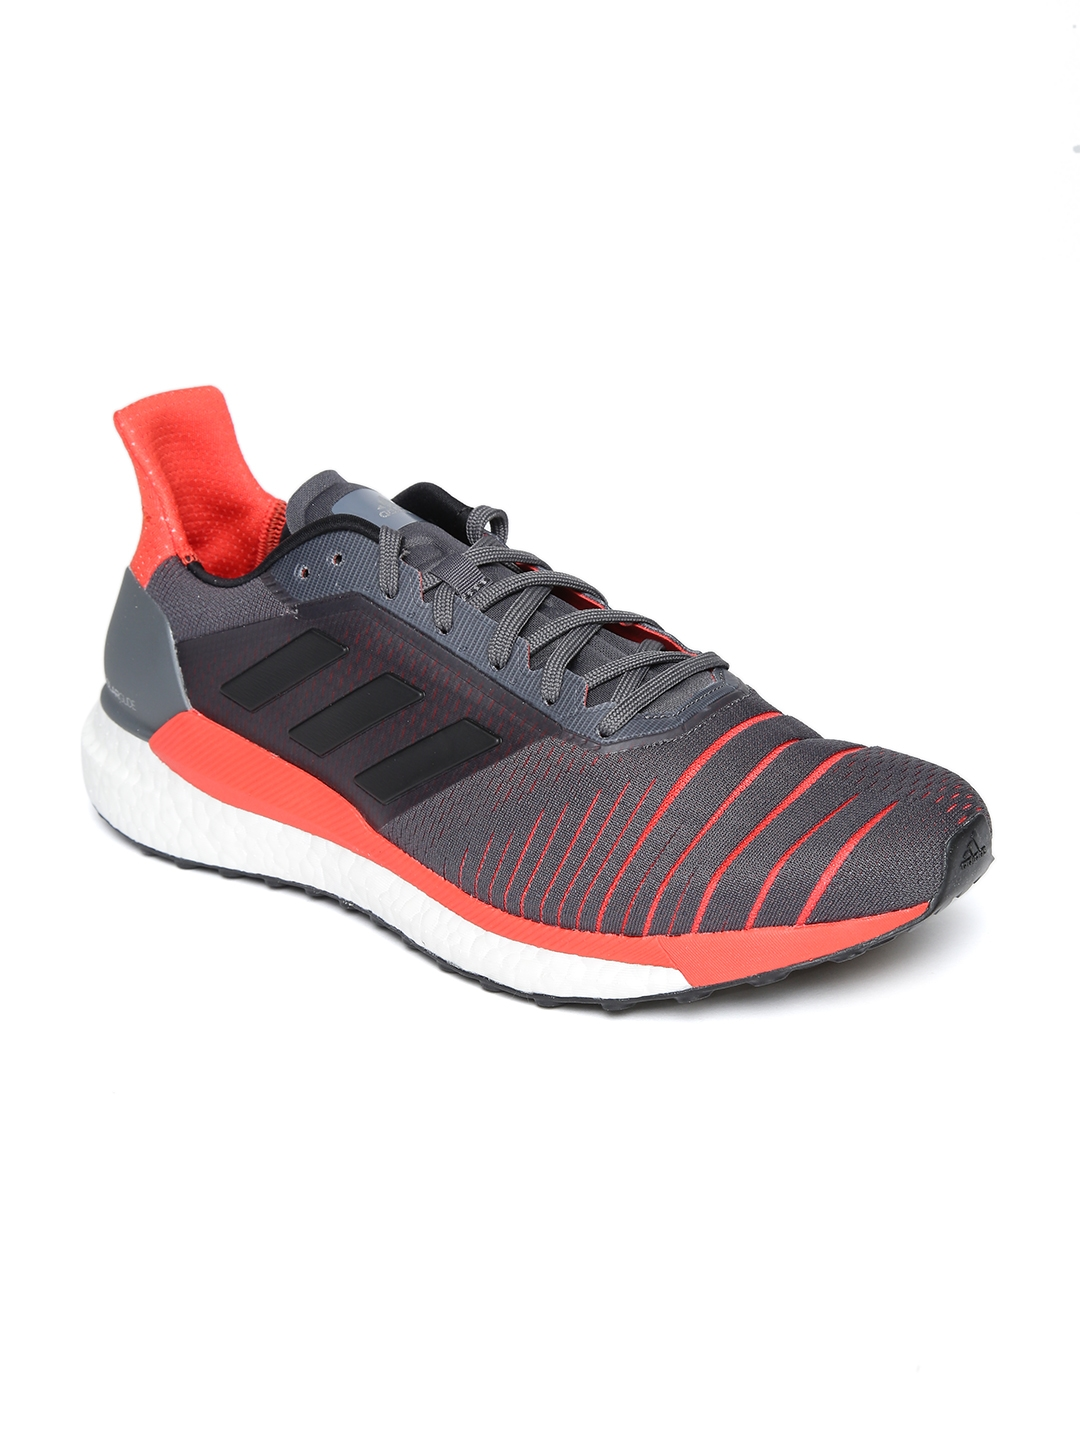 b34ac4436 Buy ADIDAS Men Charcoal Grey   Coral Pink Solar Glide Running Shoes ...